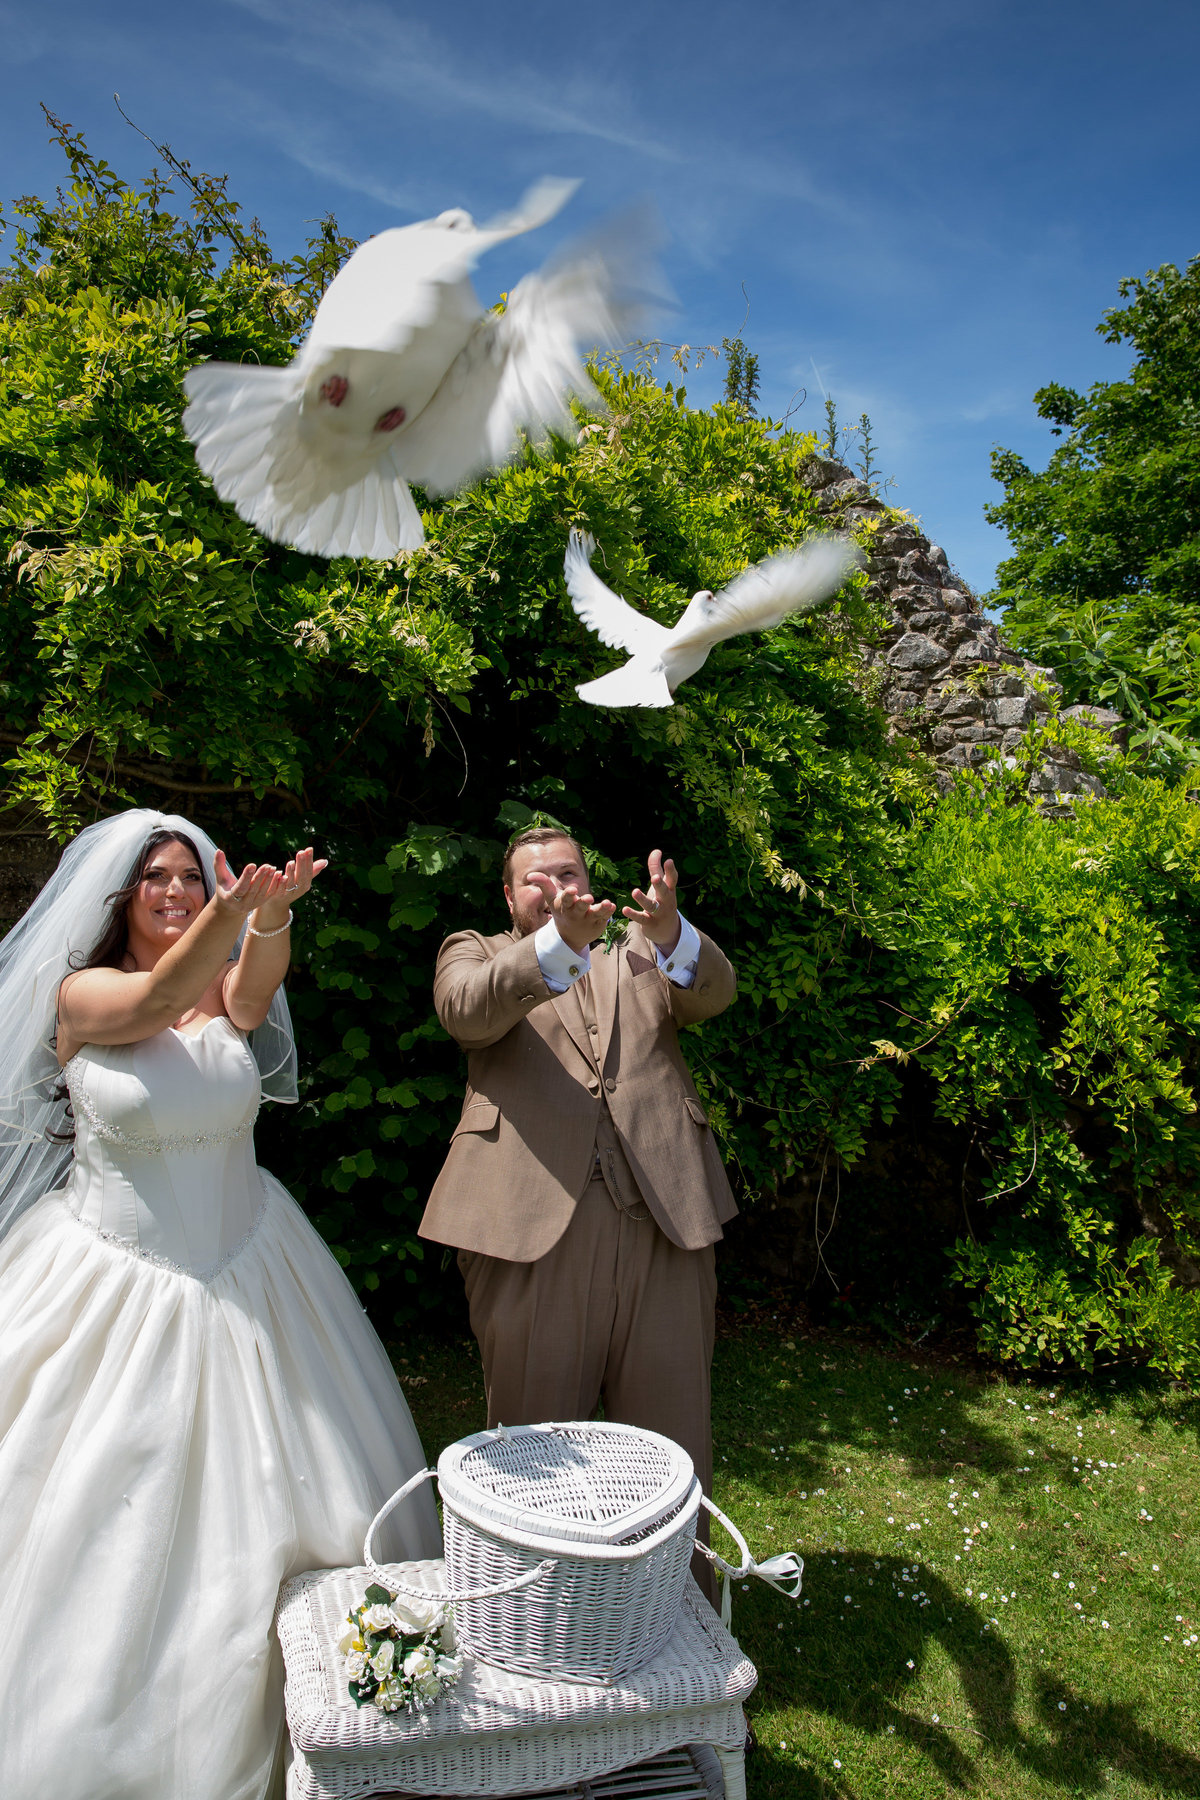 dove release in devon wedding